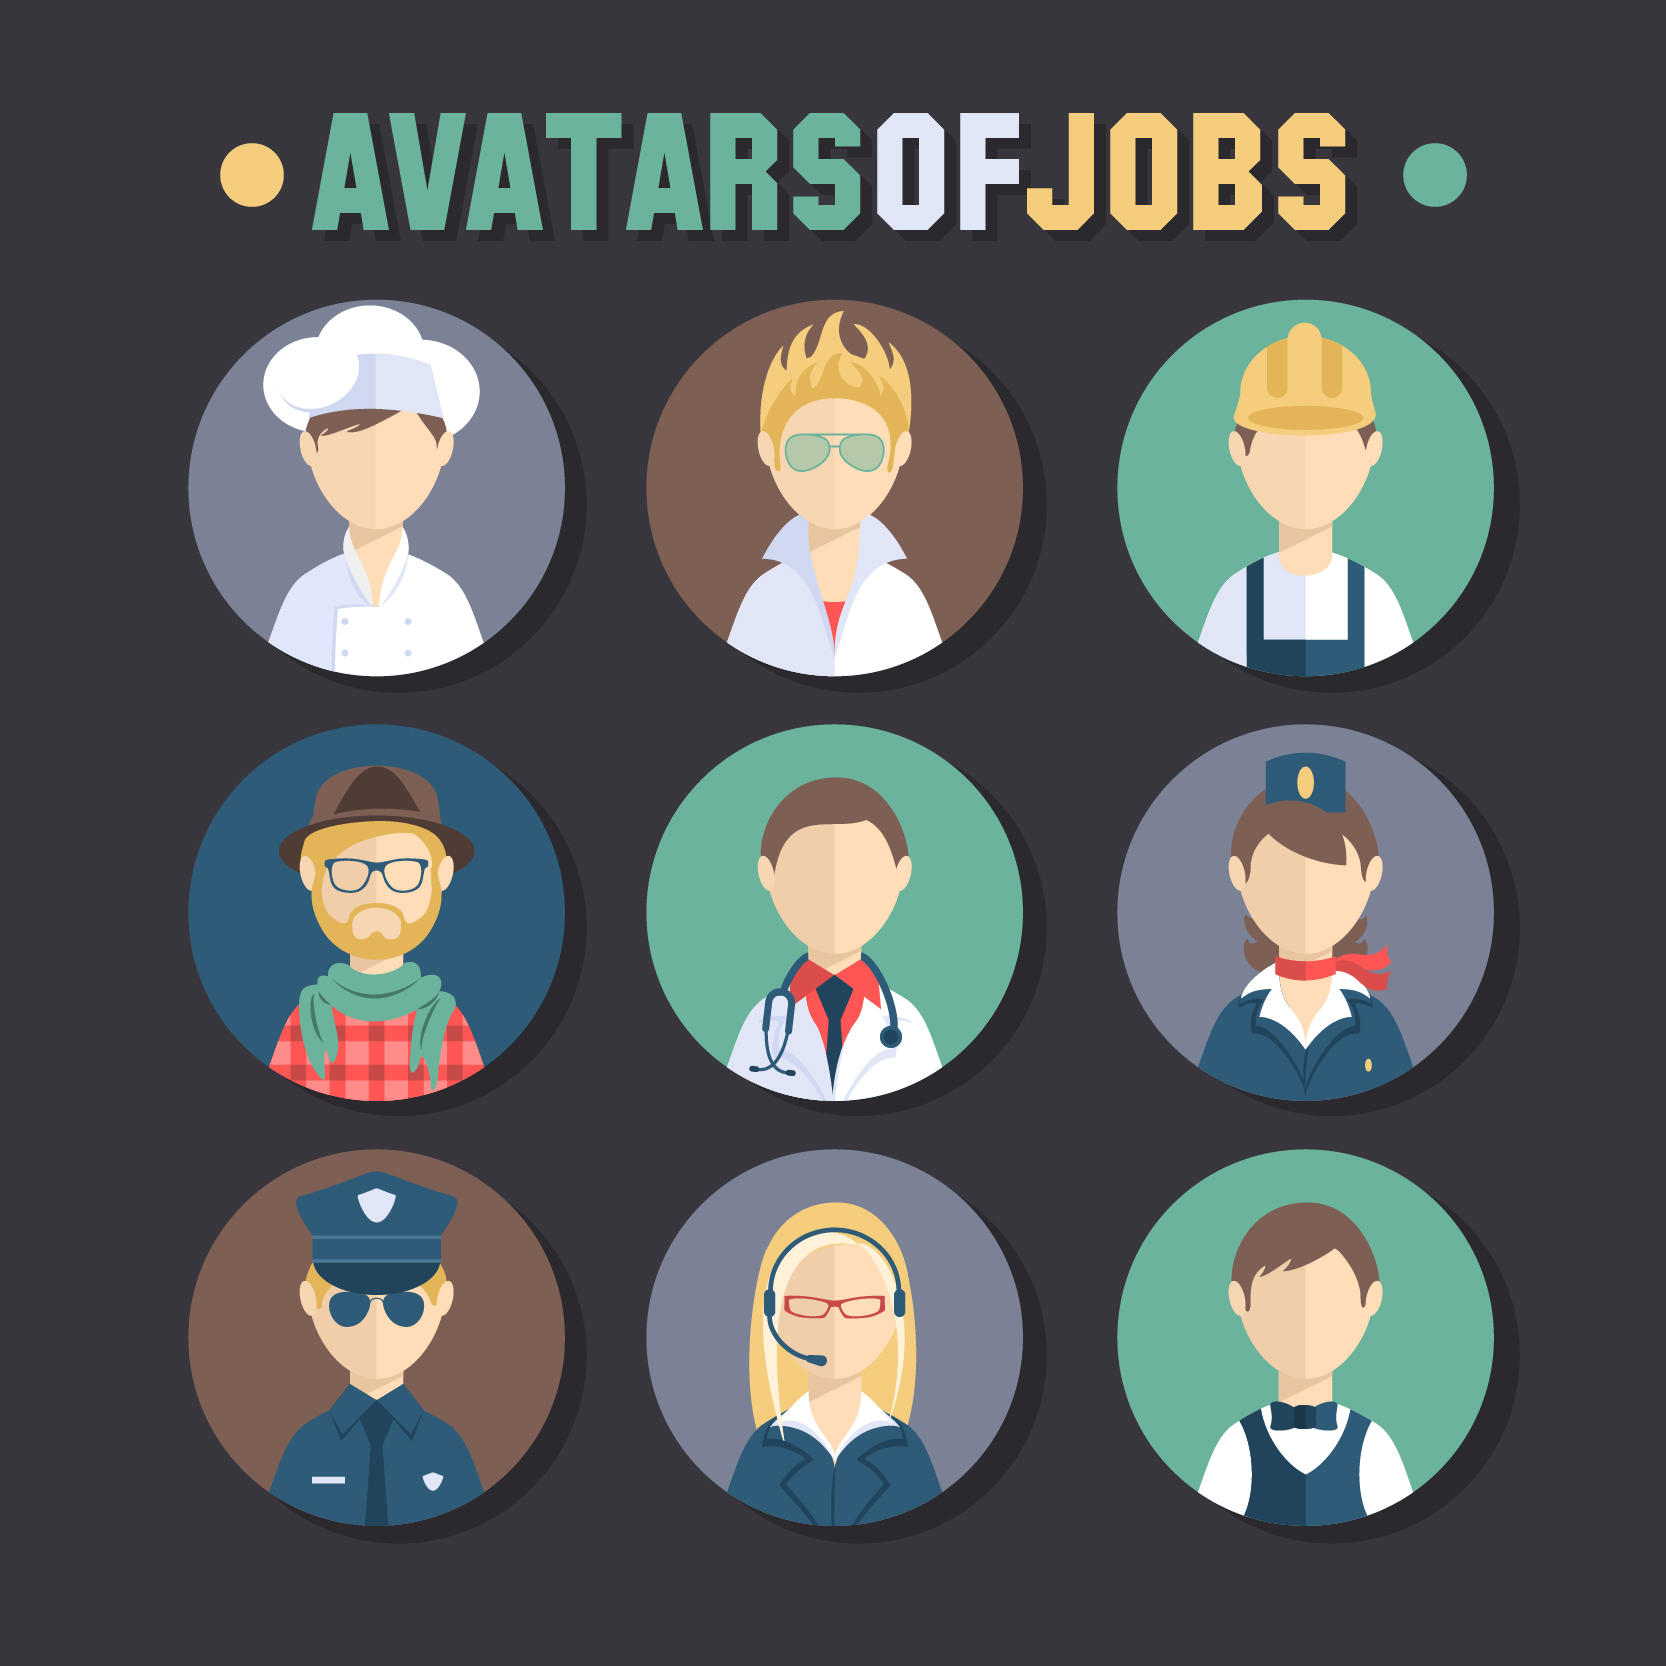 jobs-avatar-set_23-2147494761